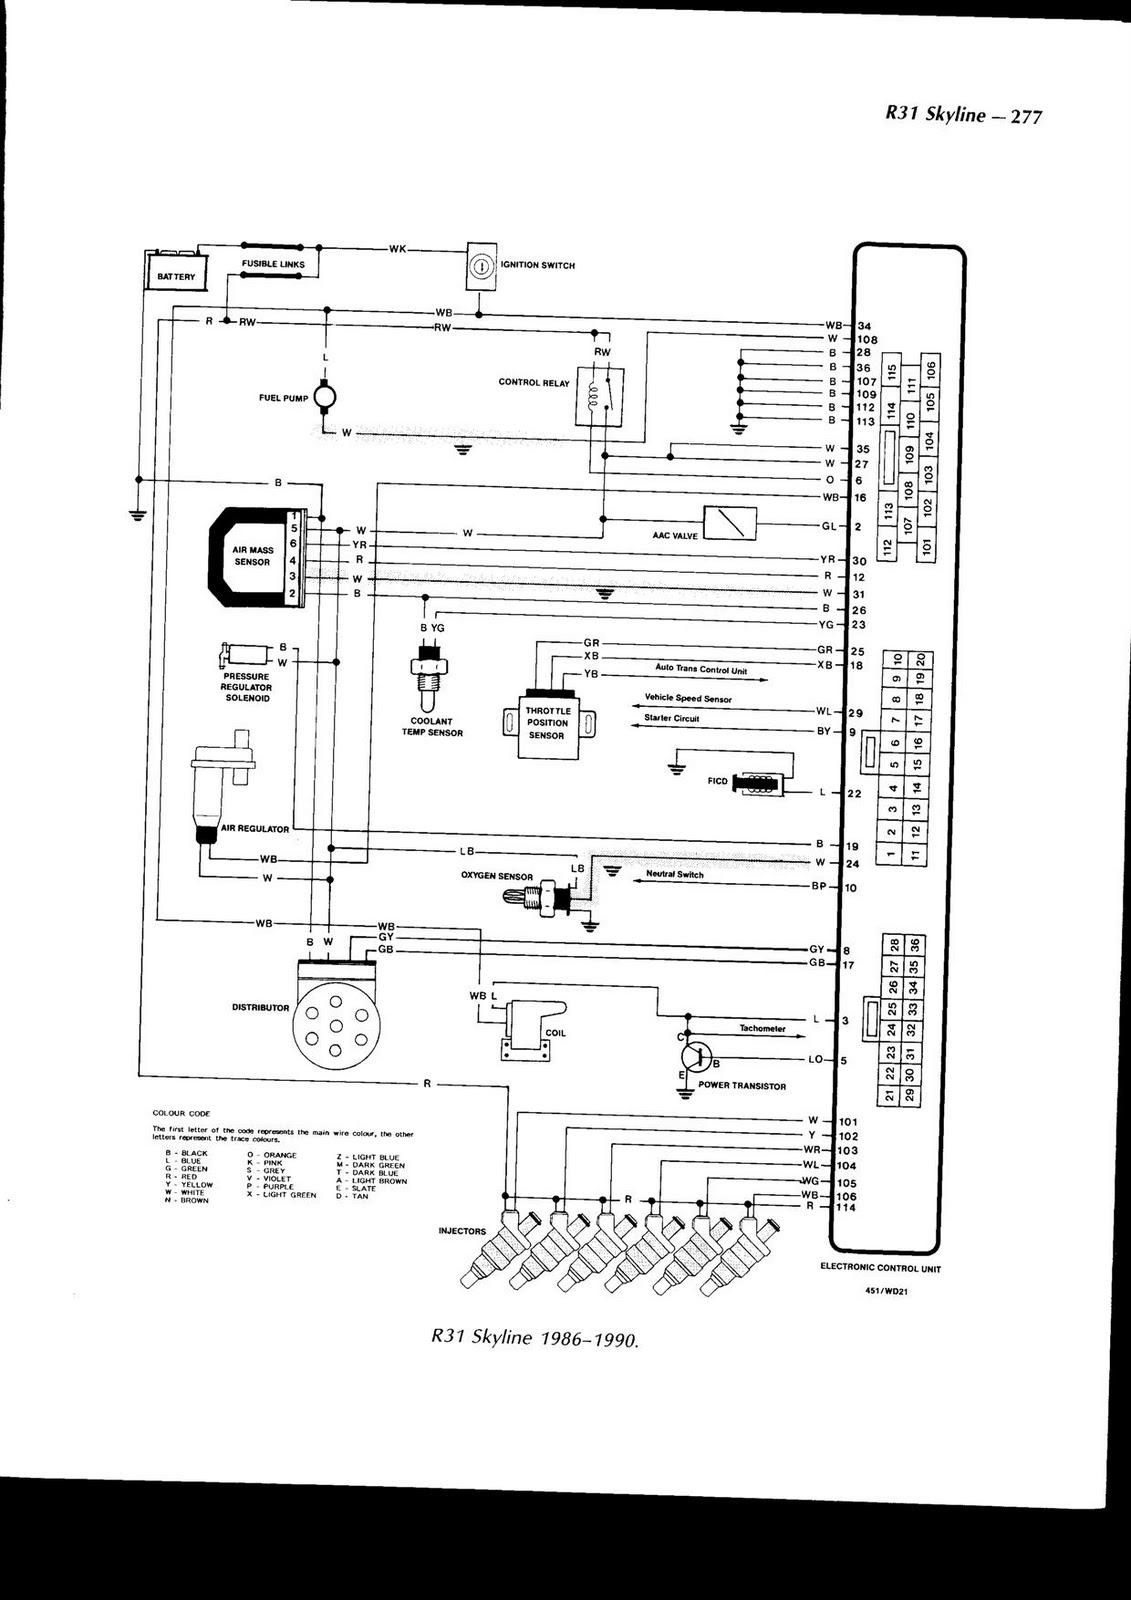 RB30_R31_Wiring_Diagram rb30 wiring diagrams 280zx project vl wiring diagram at readyjetset.co